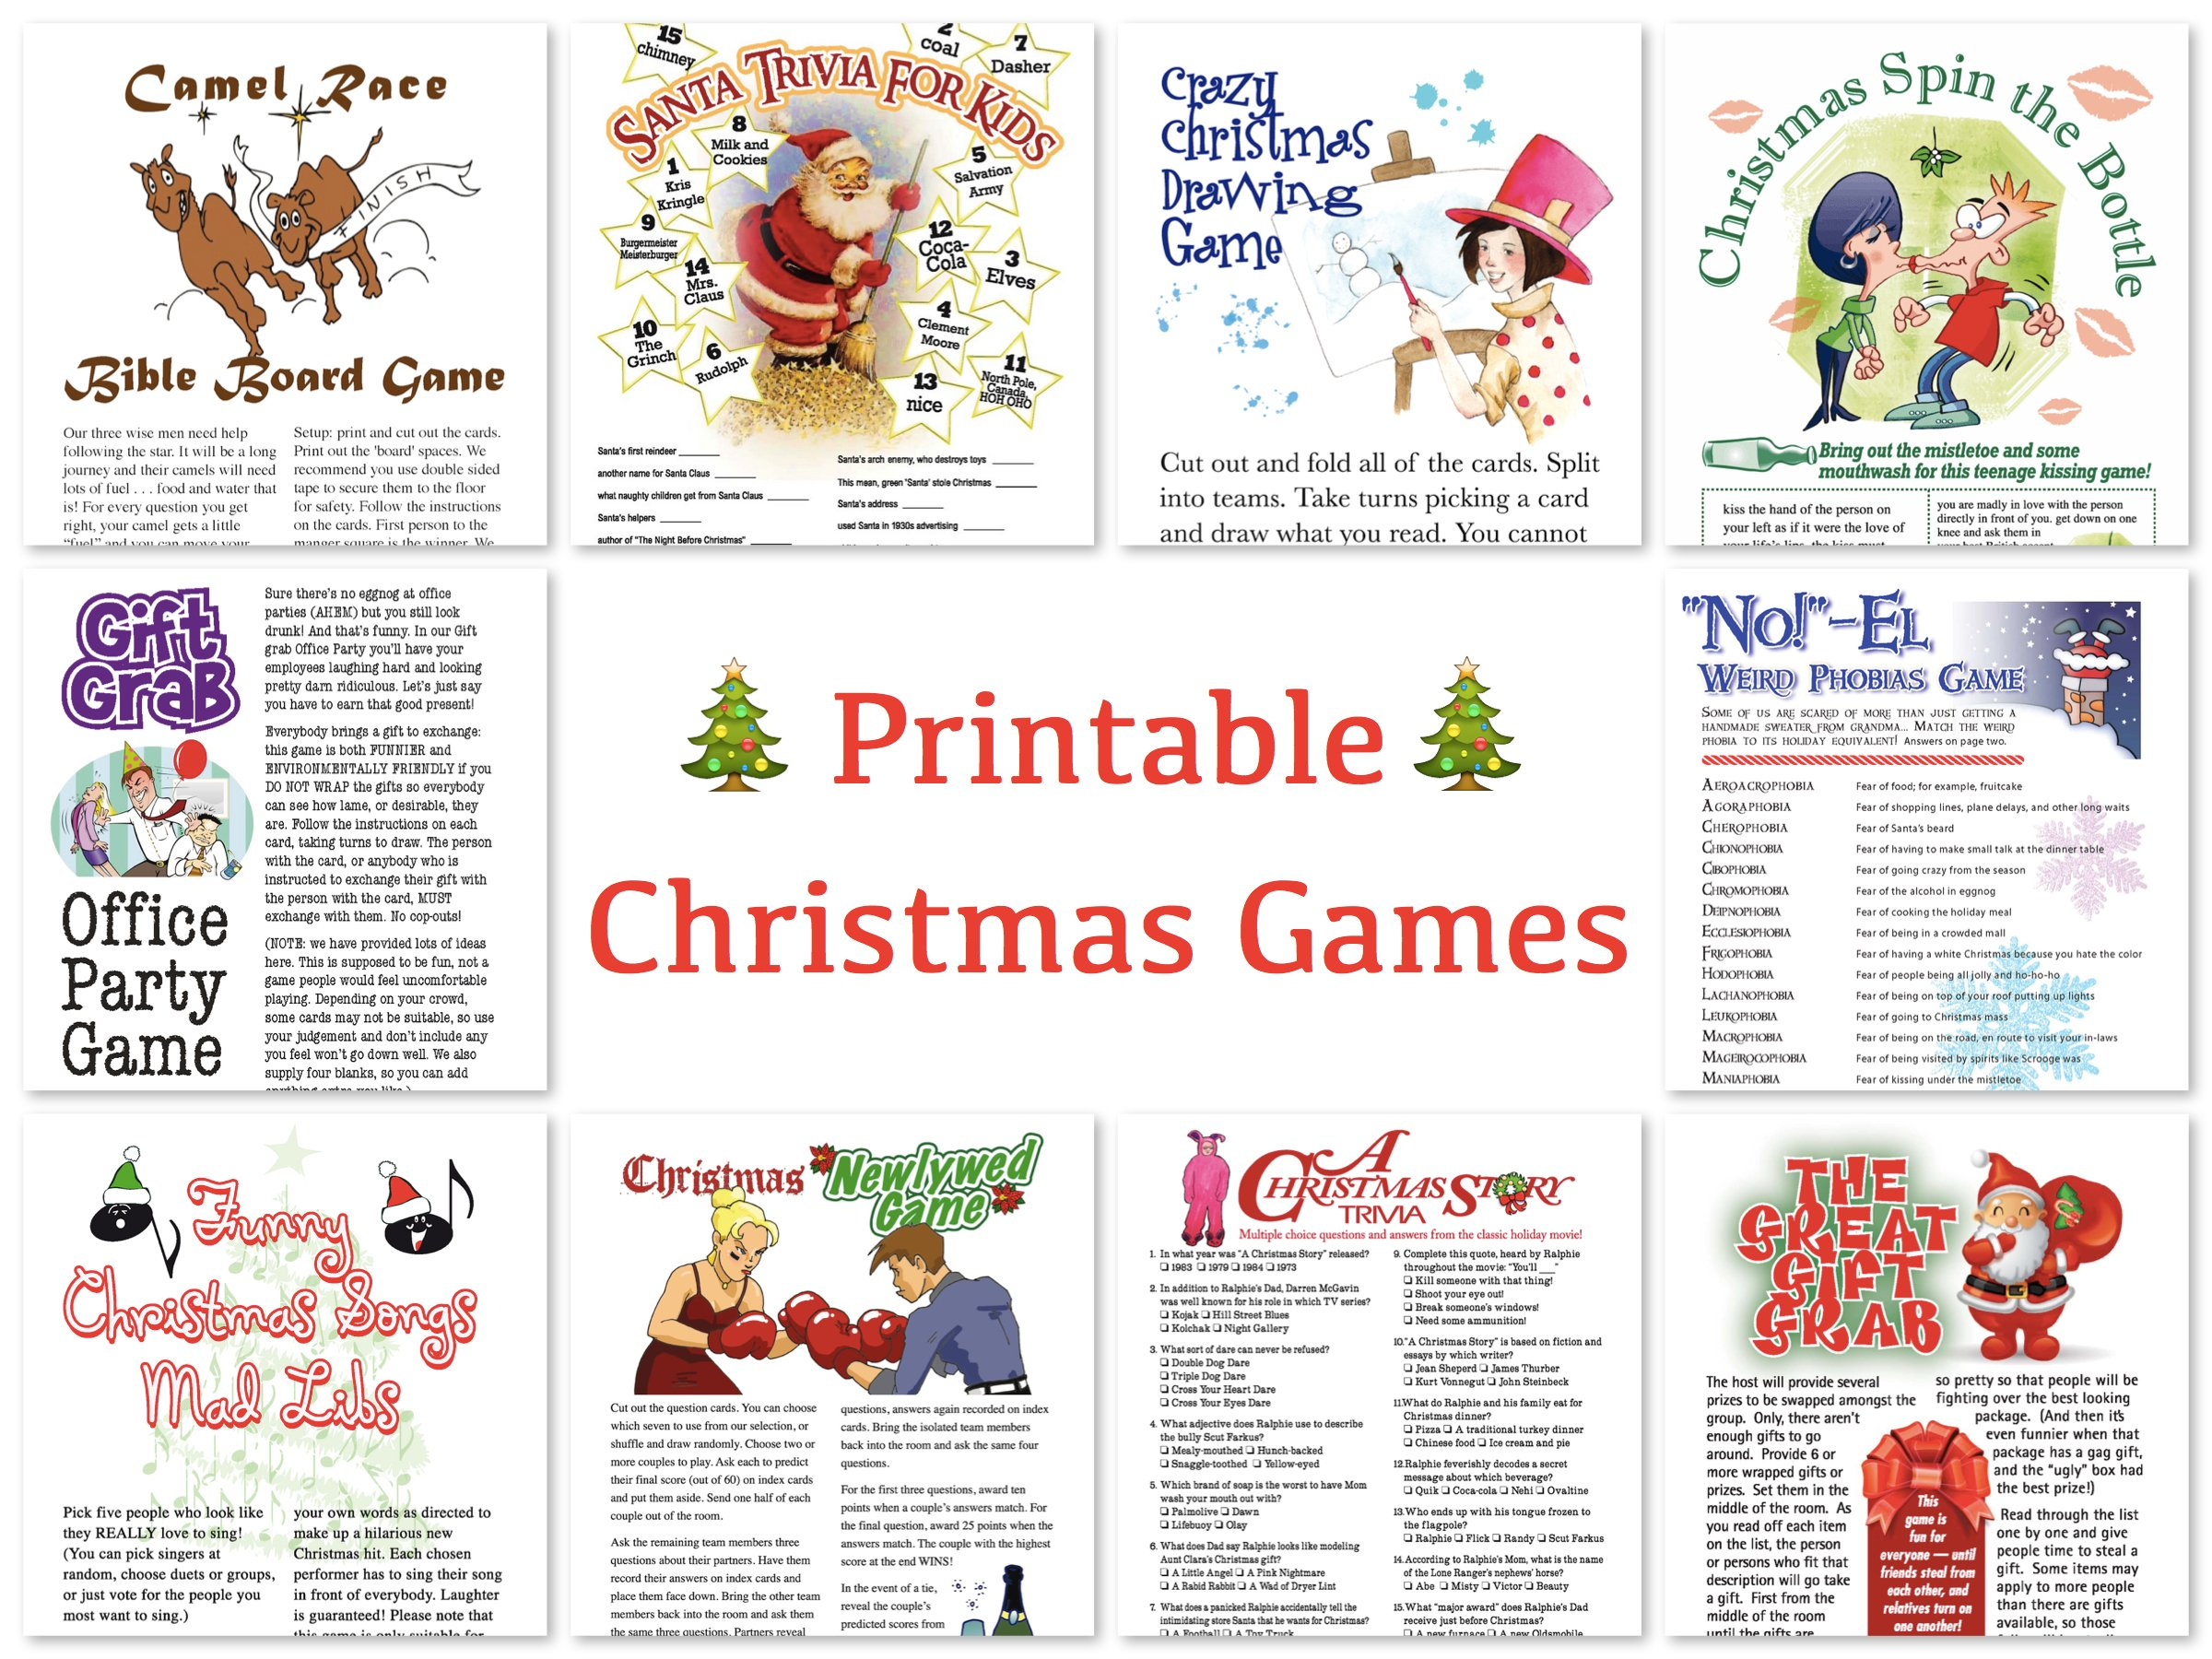 Printable Christmas Games, Printable Holiday Games